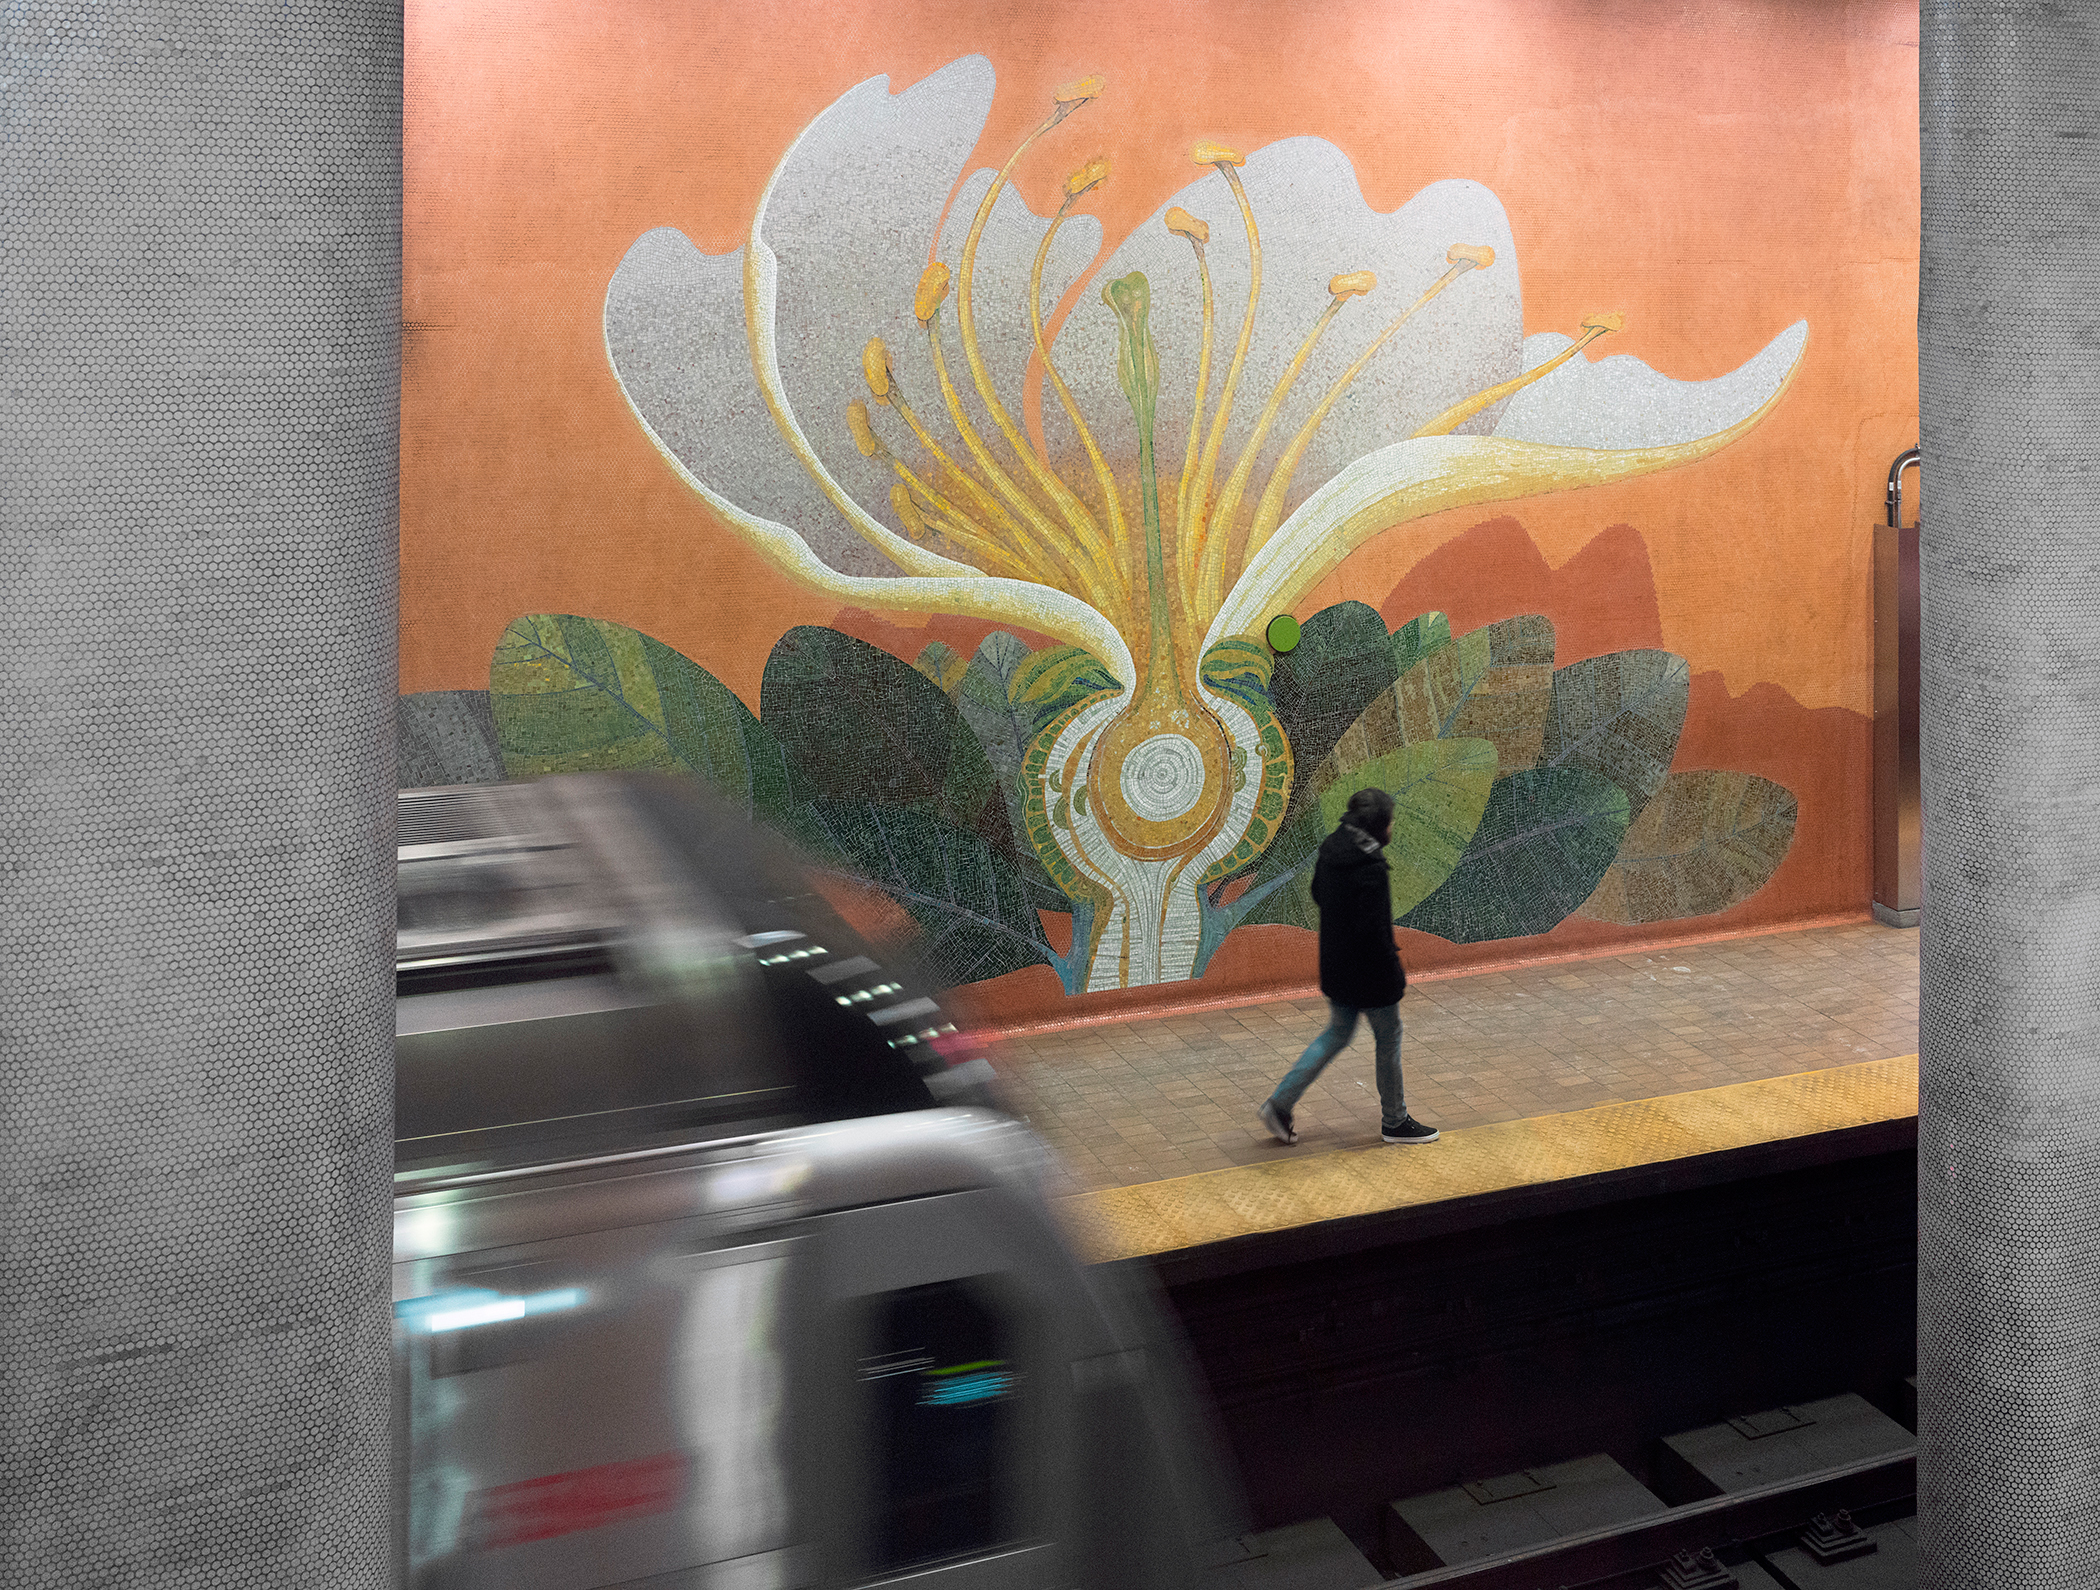 Spadina Summer Under all Seasons (1978) by James Sutherland, Located in the Dupont Subway Station. Photo by Matthew Monteith